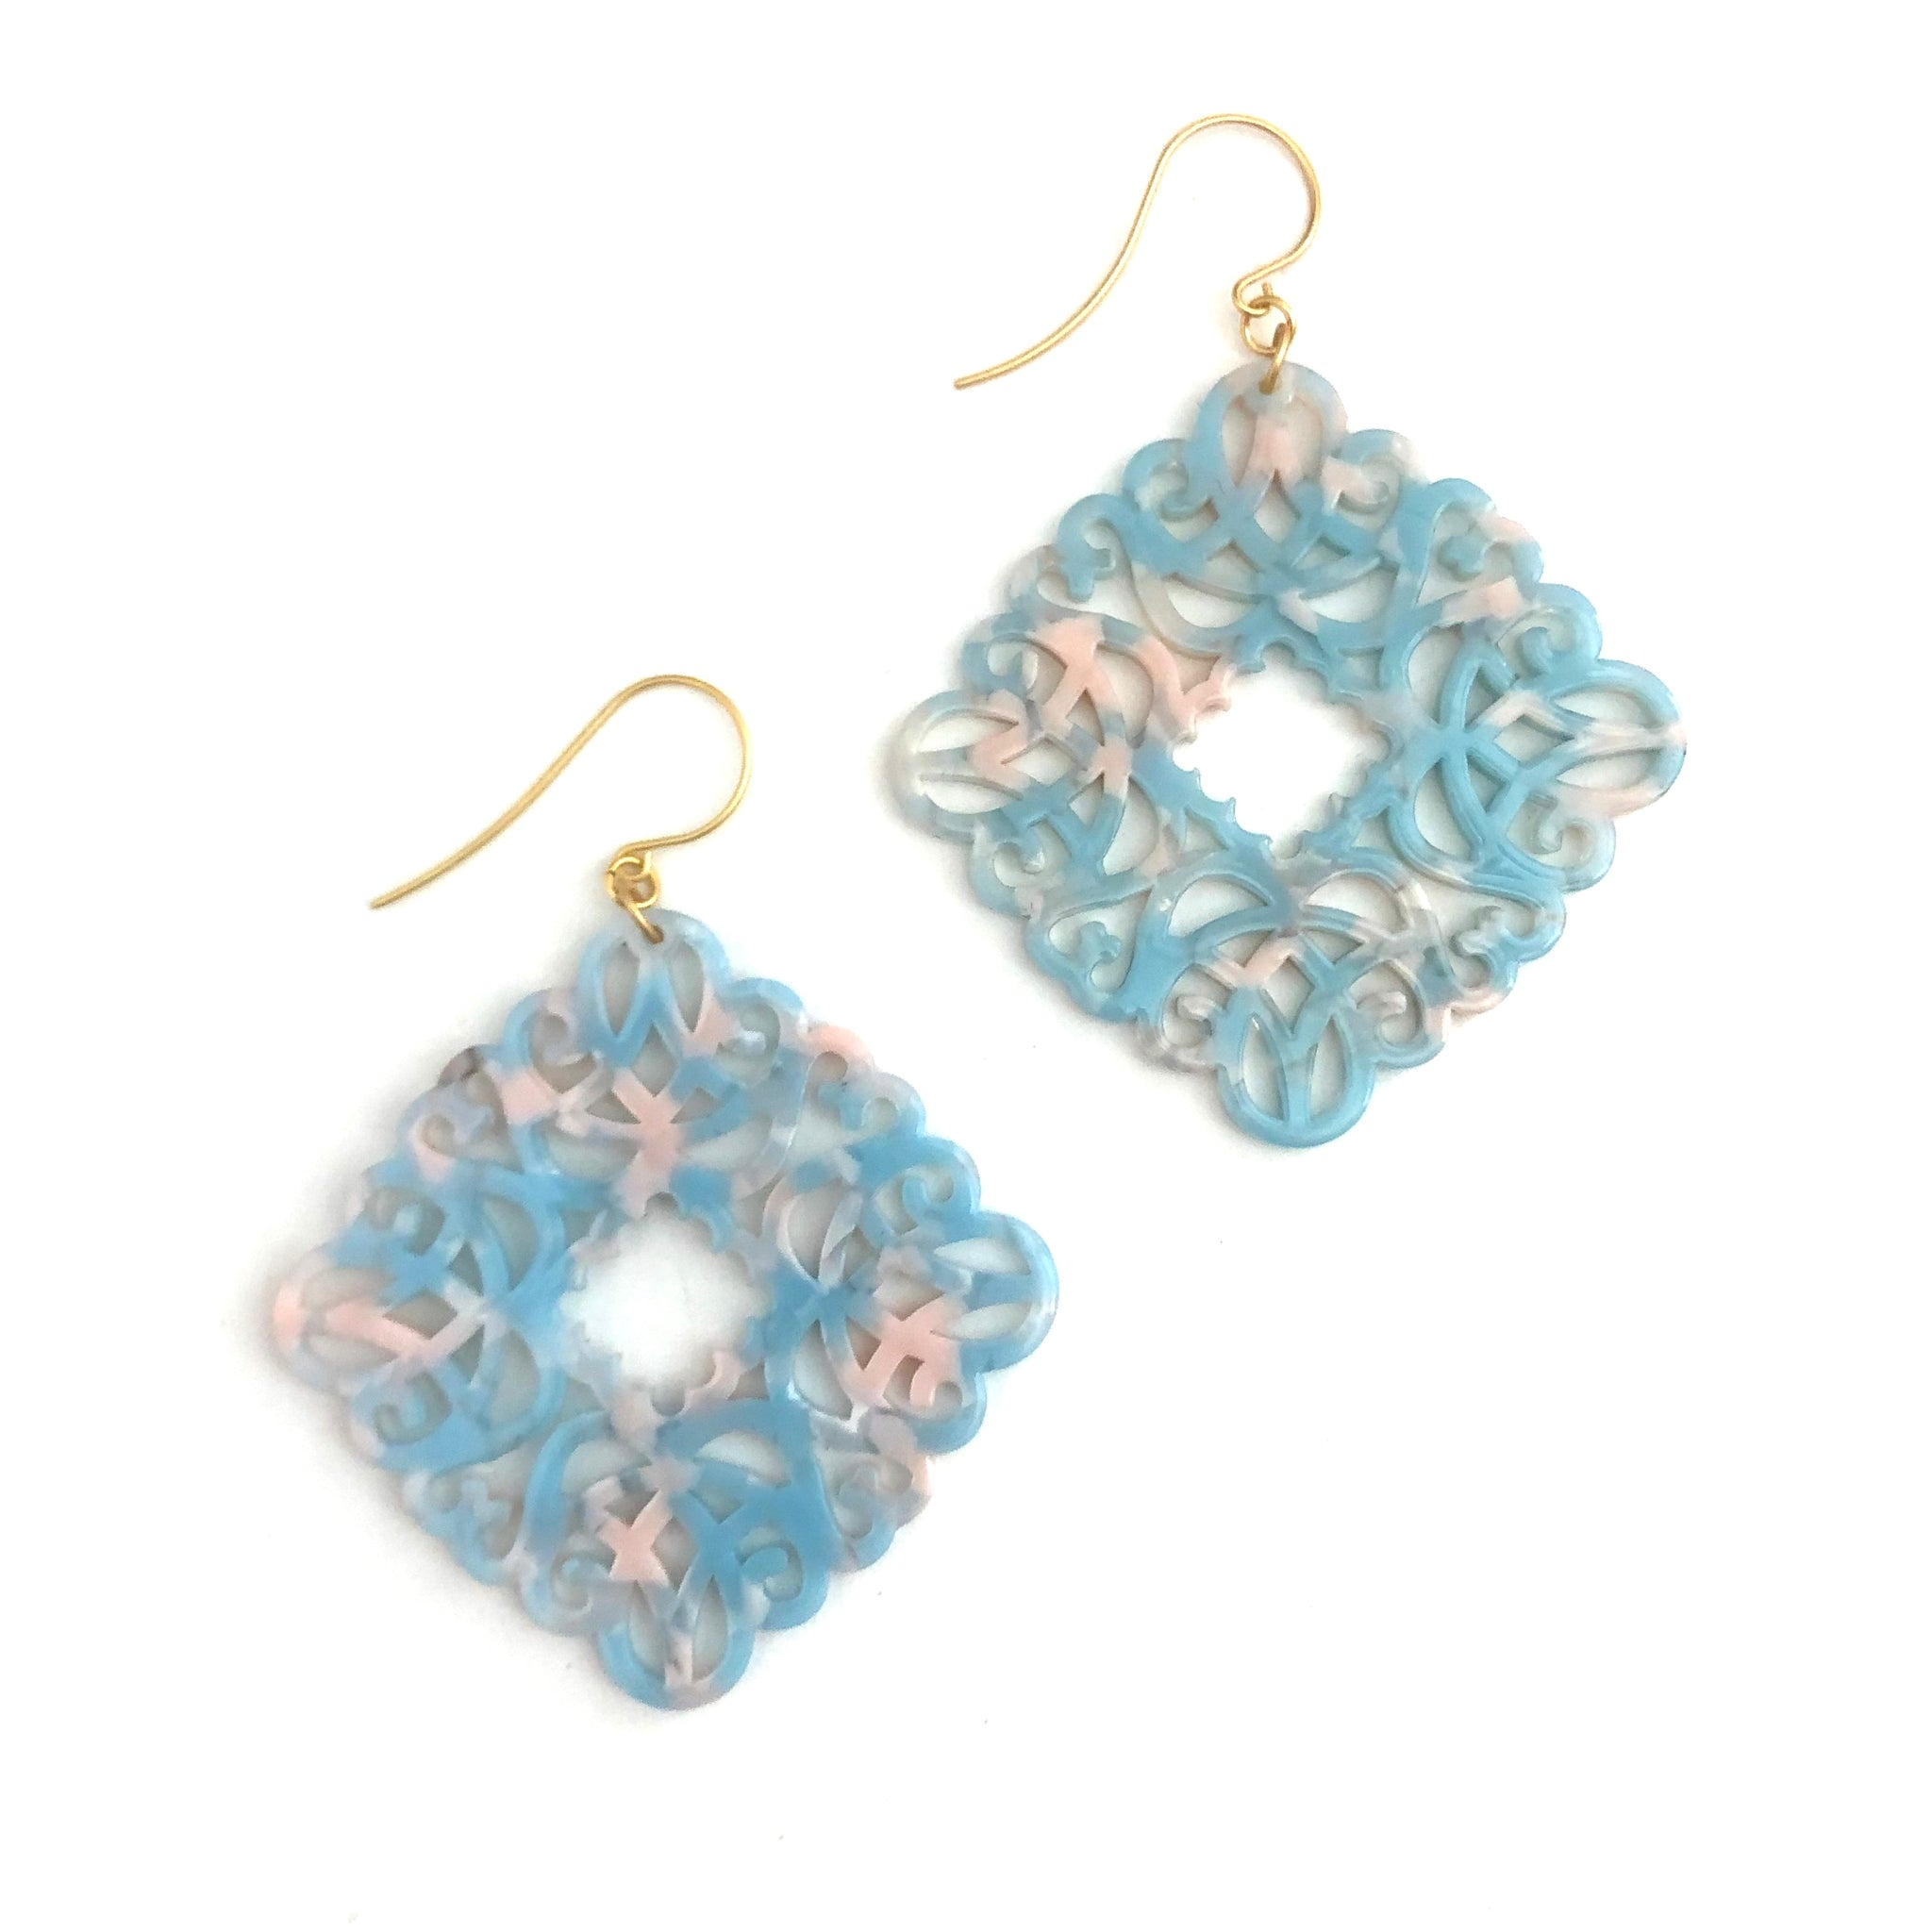 Pink & Ice Knotted Lace Drop Earrings